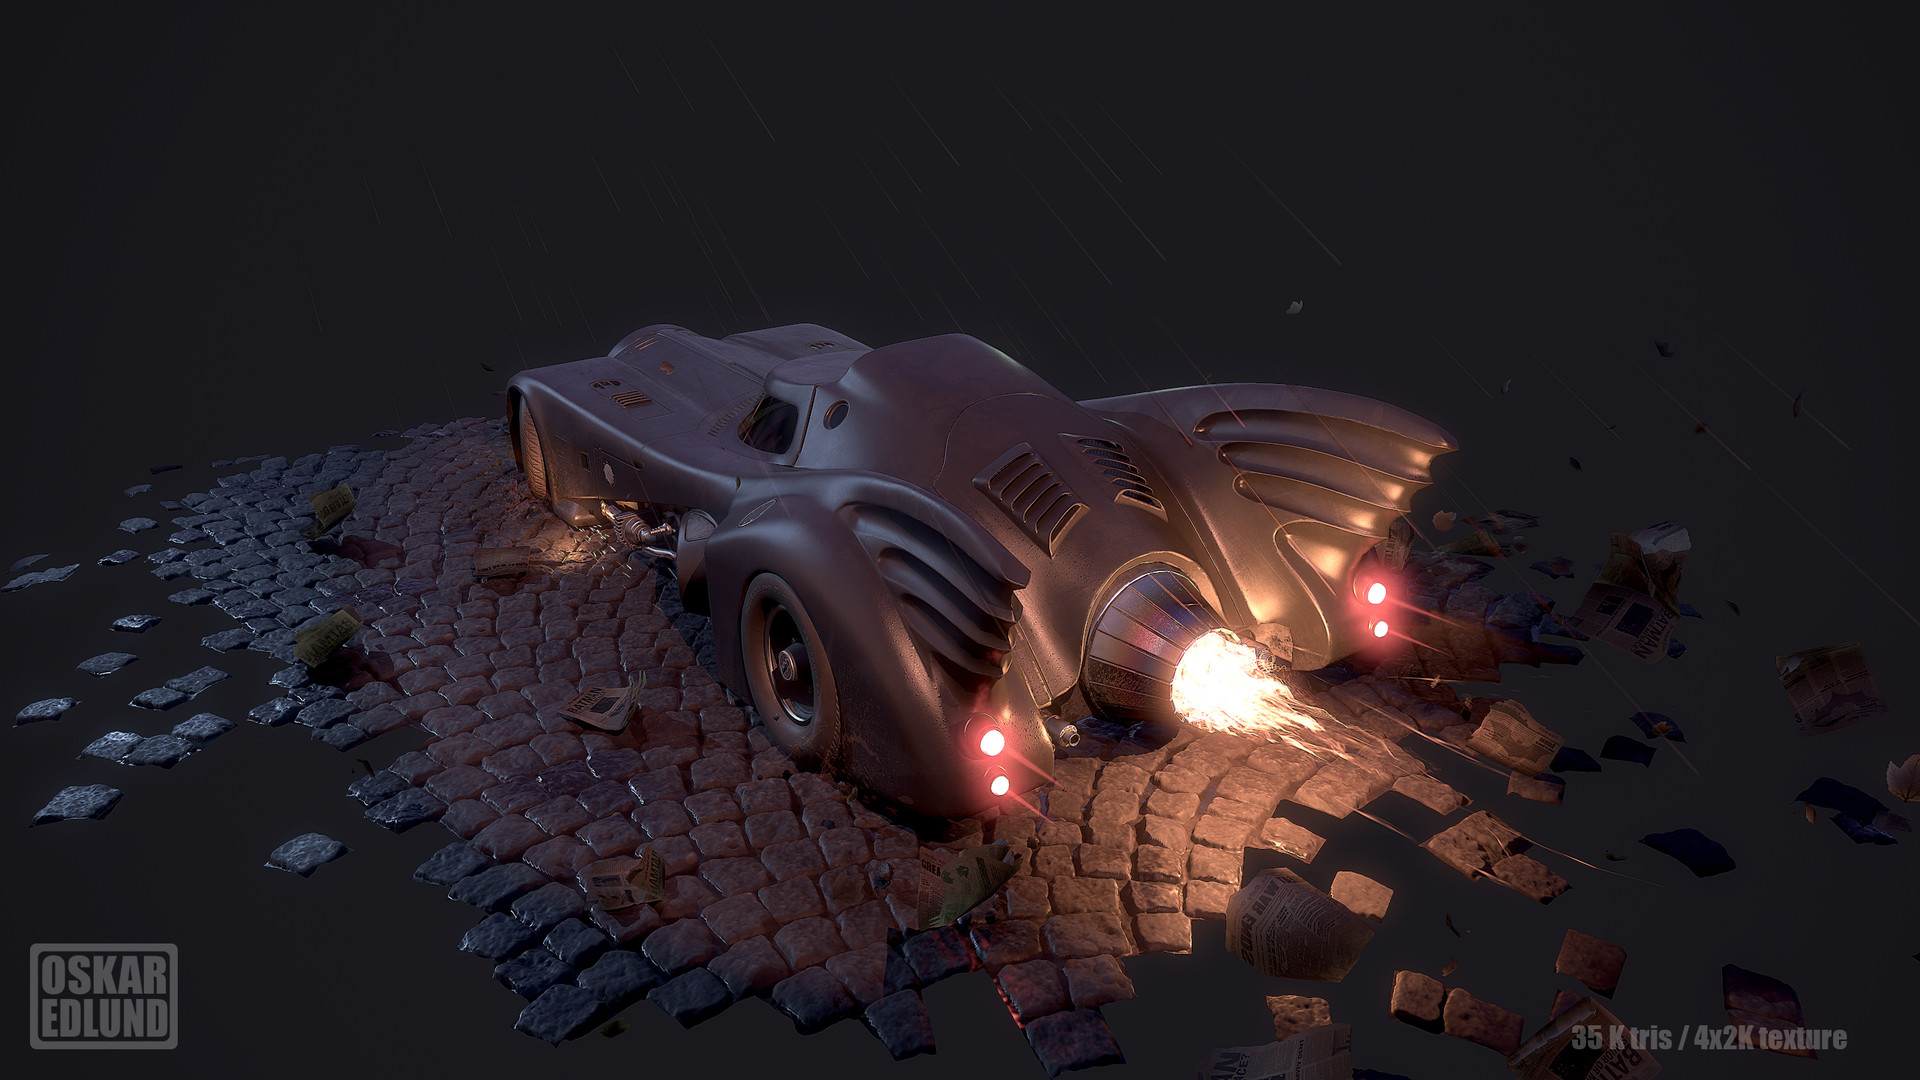 Oskar edlund batmobile 04